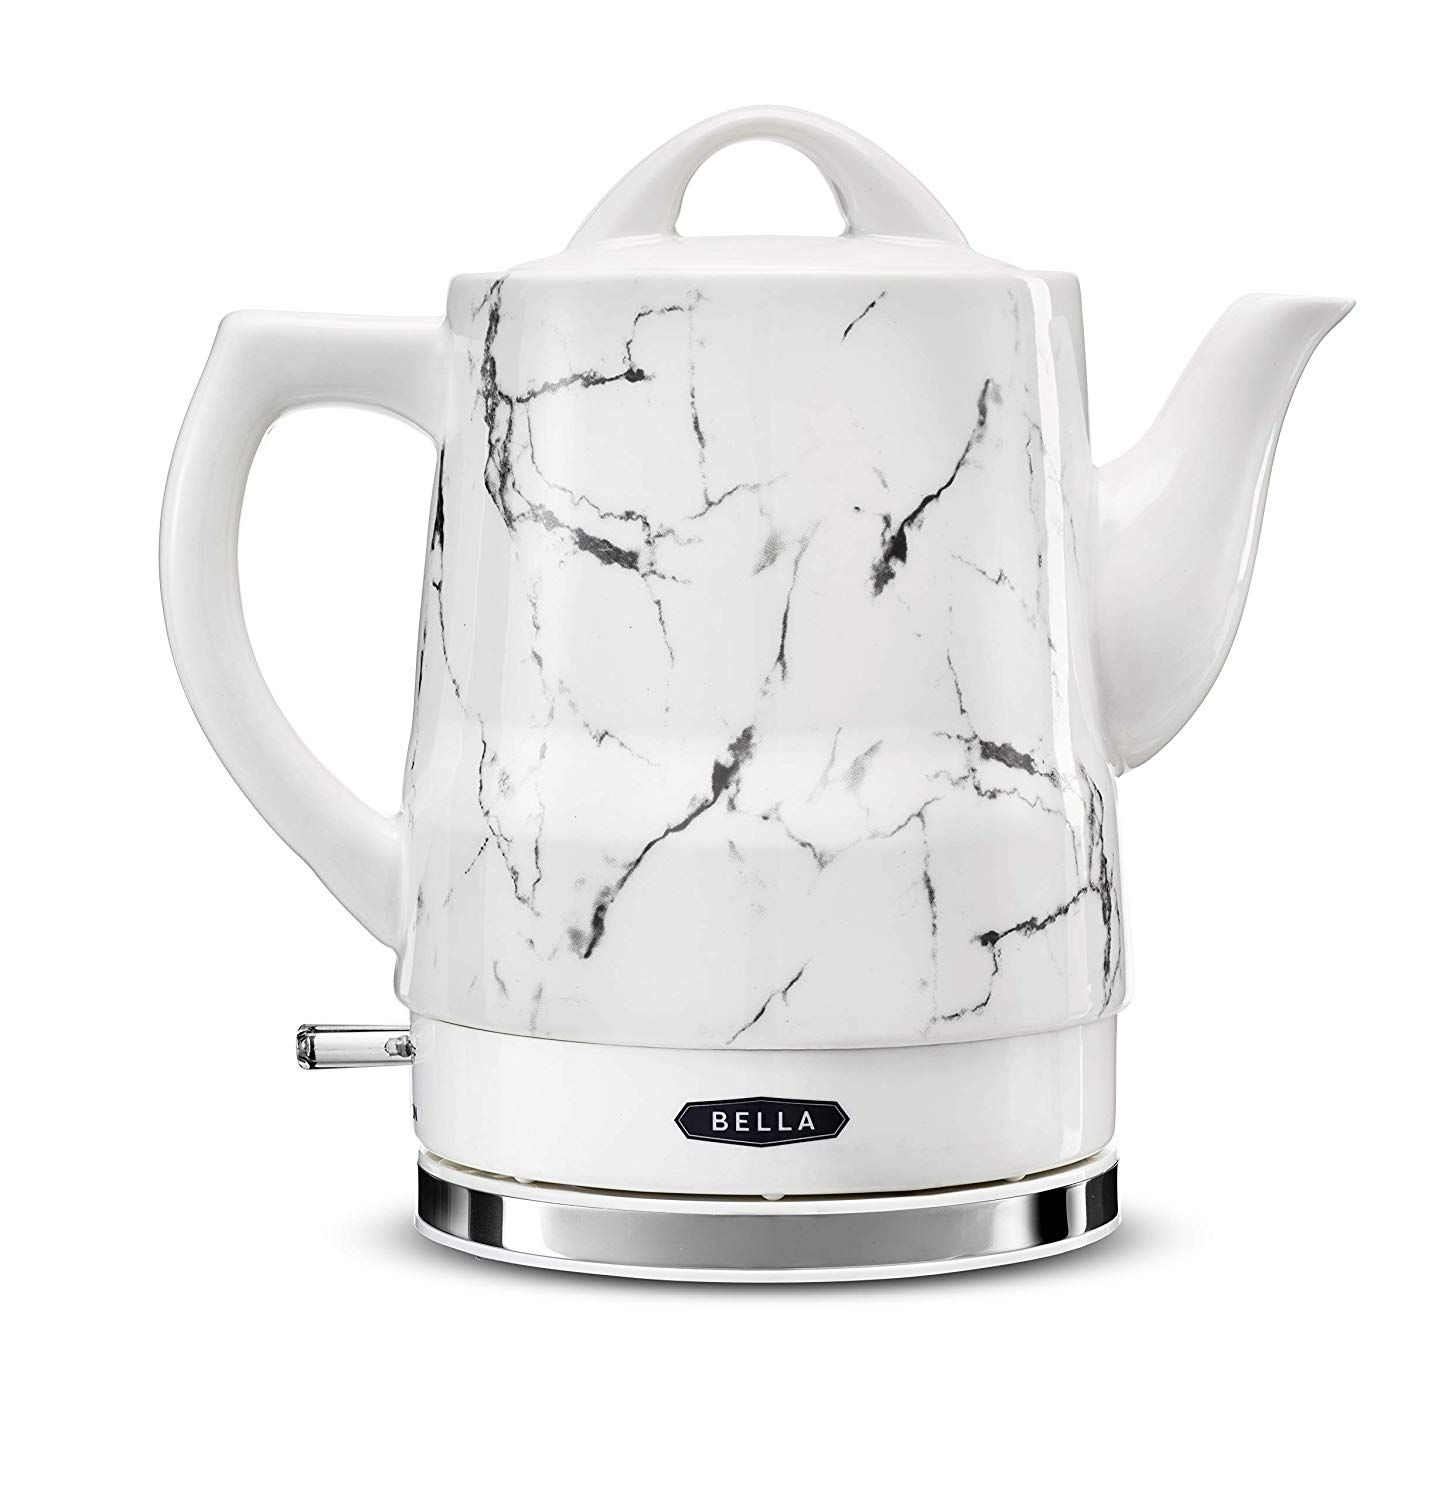 Amazon Com Bella 13622 1 2l Electric Ceramic Tea Kettle With Detachable Base And Boil Dry Protection Electric Tea Electric Tea Kettle Electric Kettle Kettle